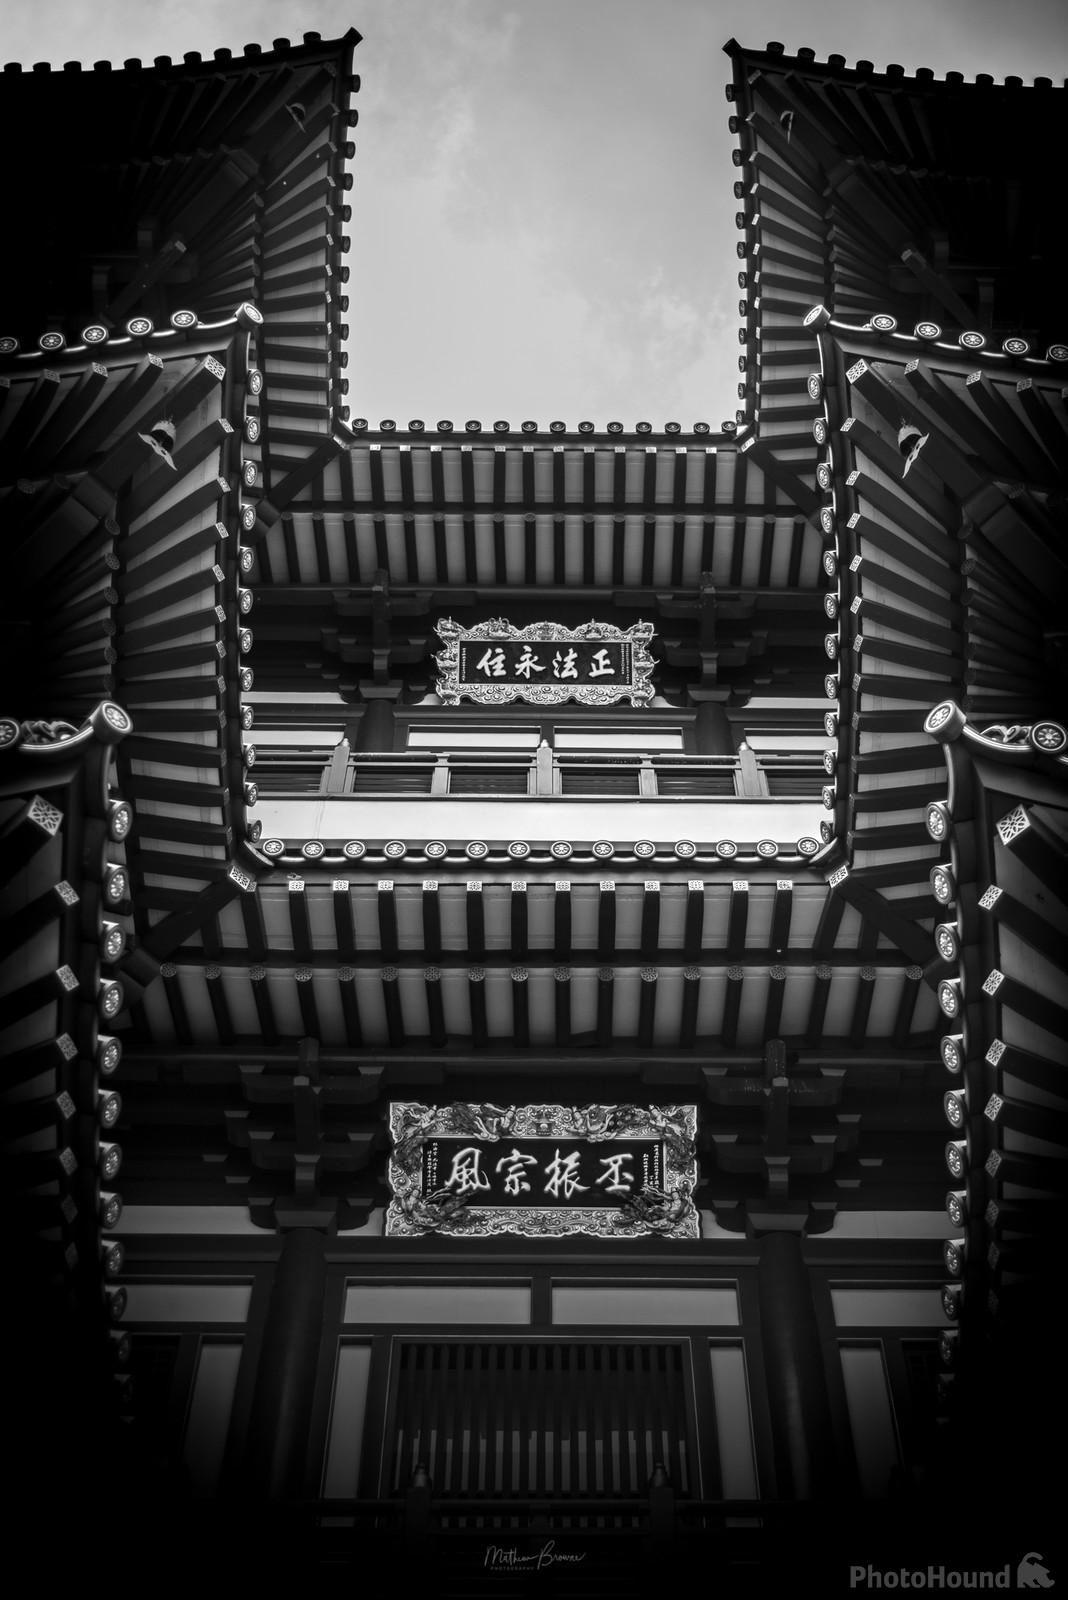 Image of Buddha Tooth Relic Temple - Exterior by Mathew Browne